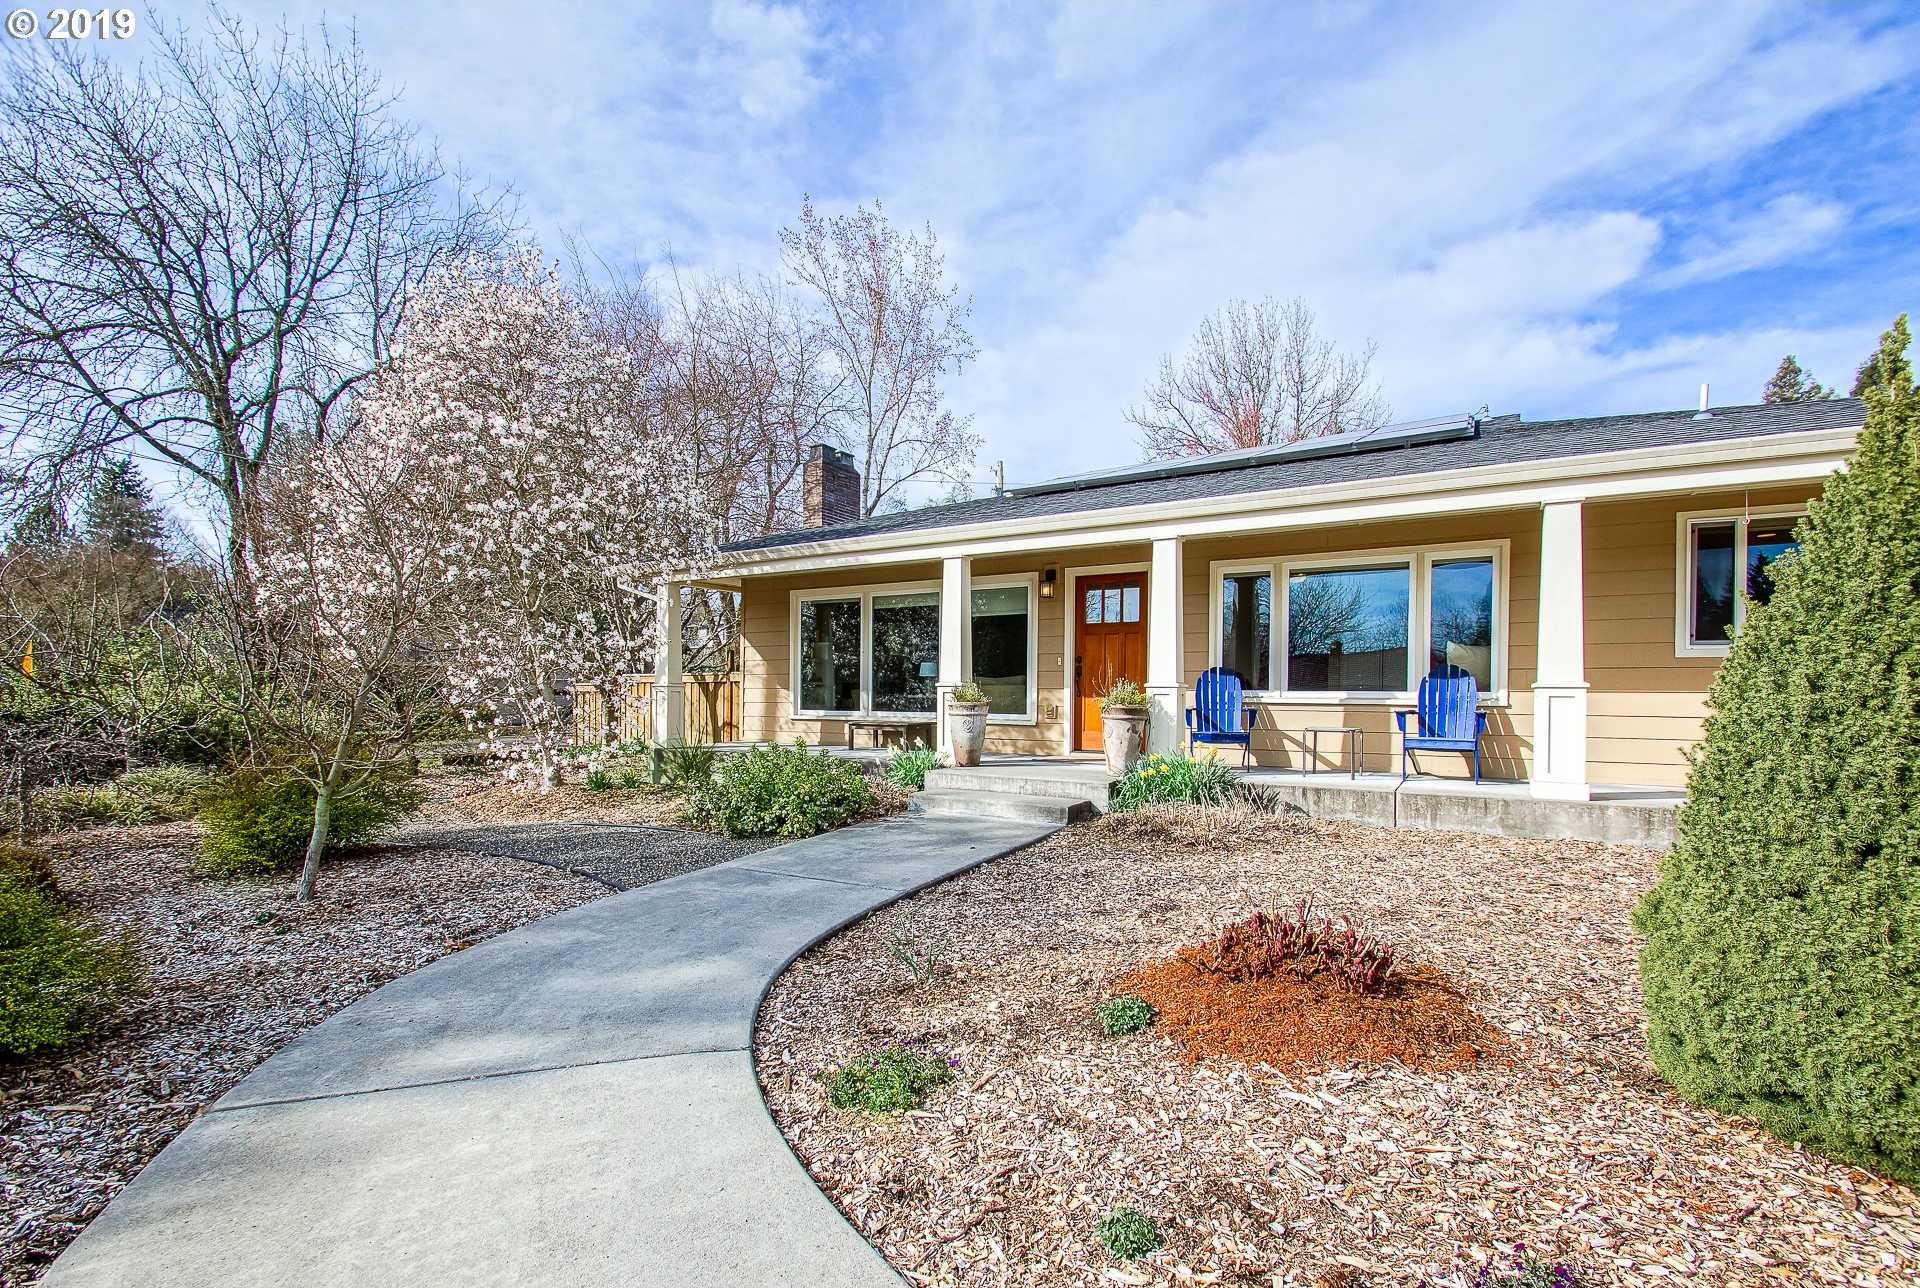 $675,000 - 3Br/2Ba -  for Sale in West Slope/raleigh Hills, Portland